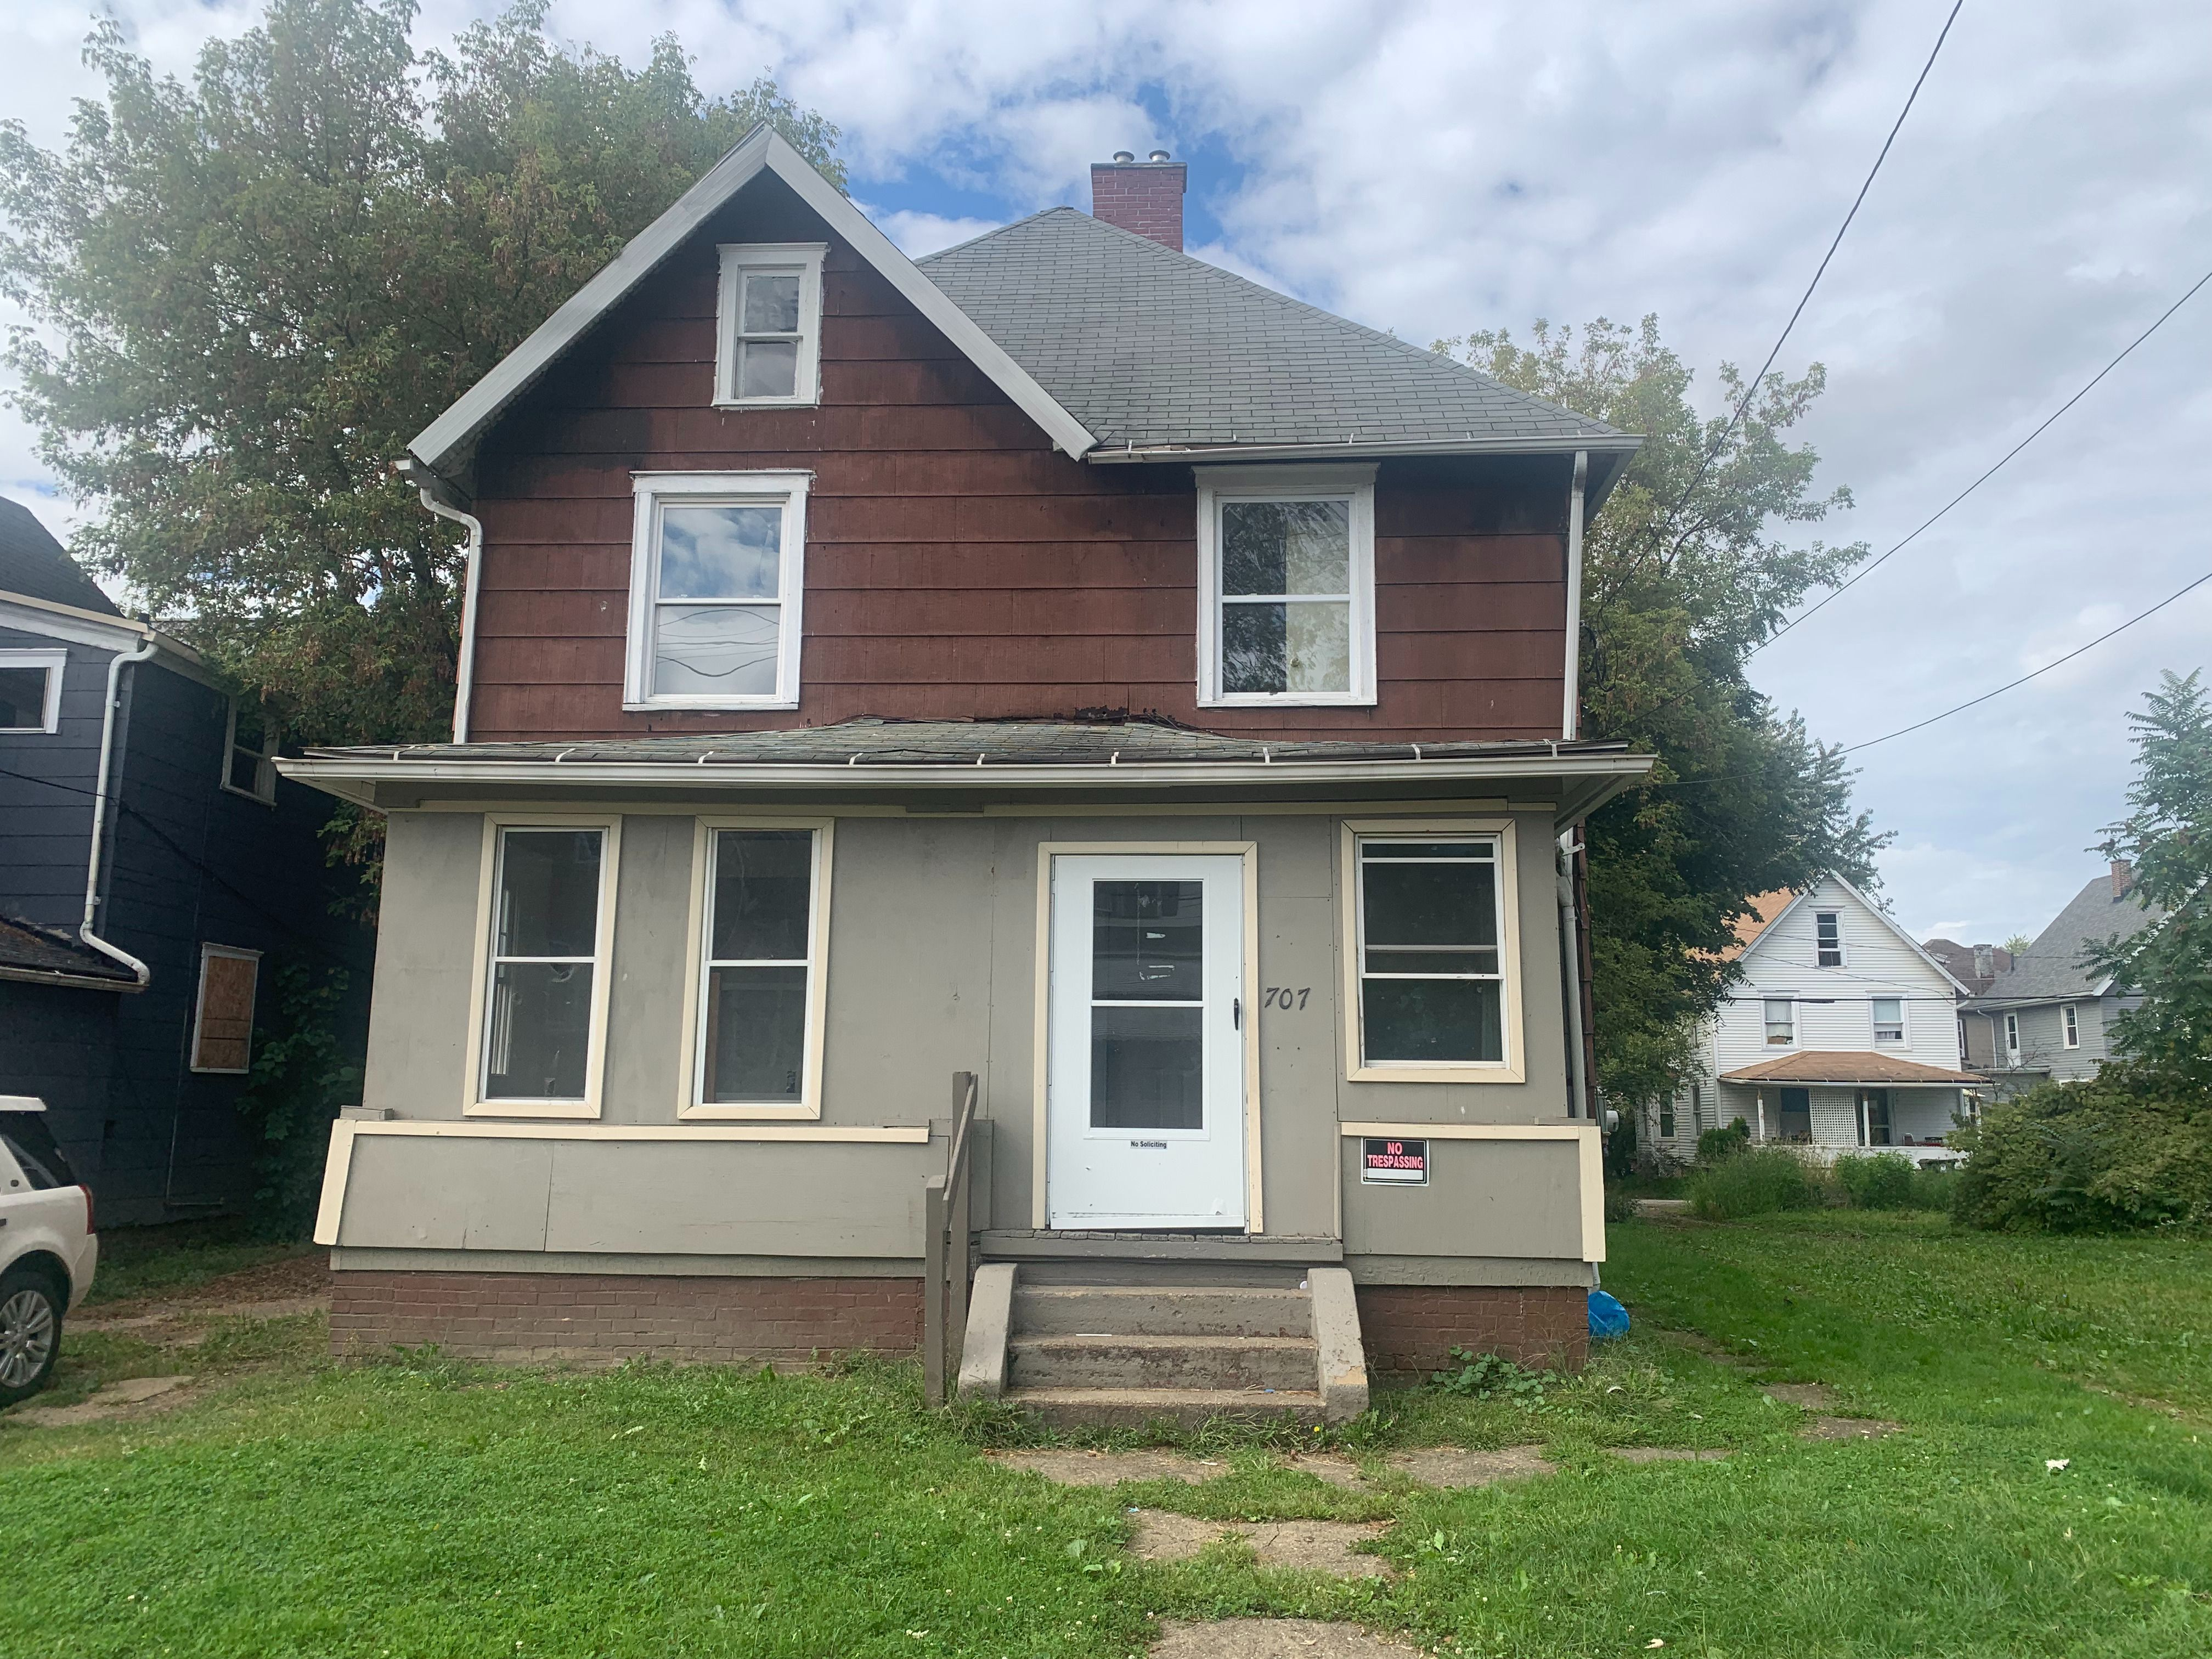 707 Newton Ave NW, Canton, OH